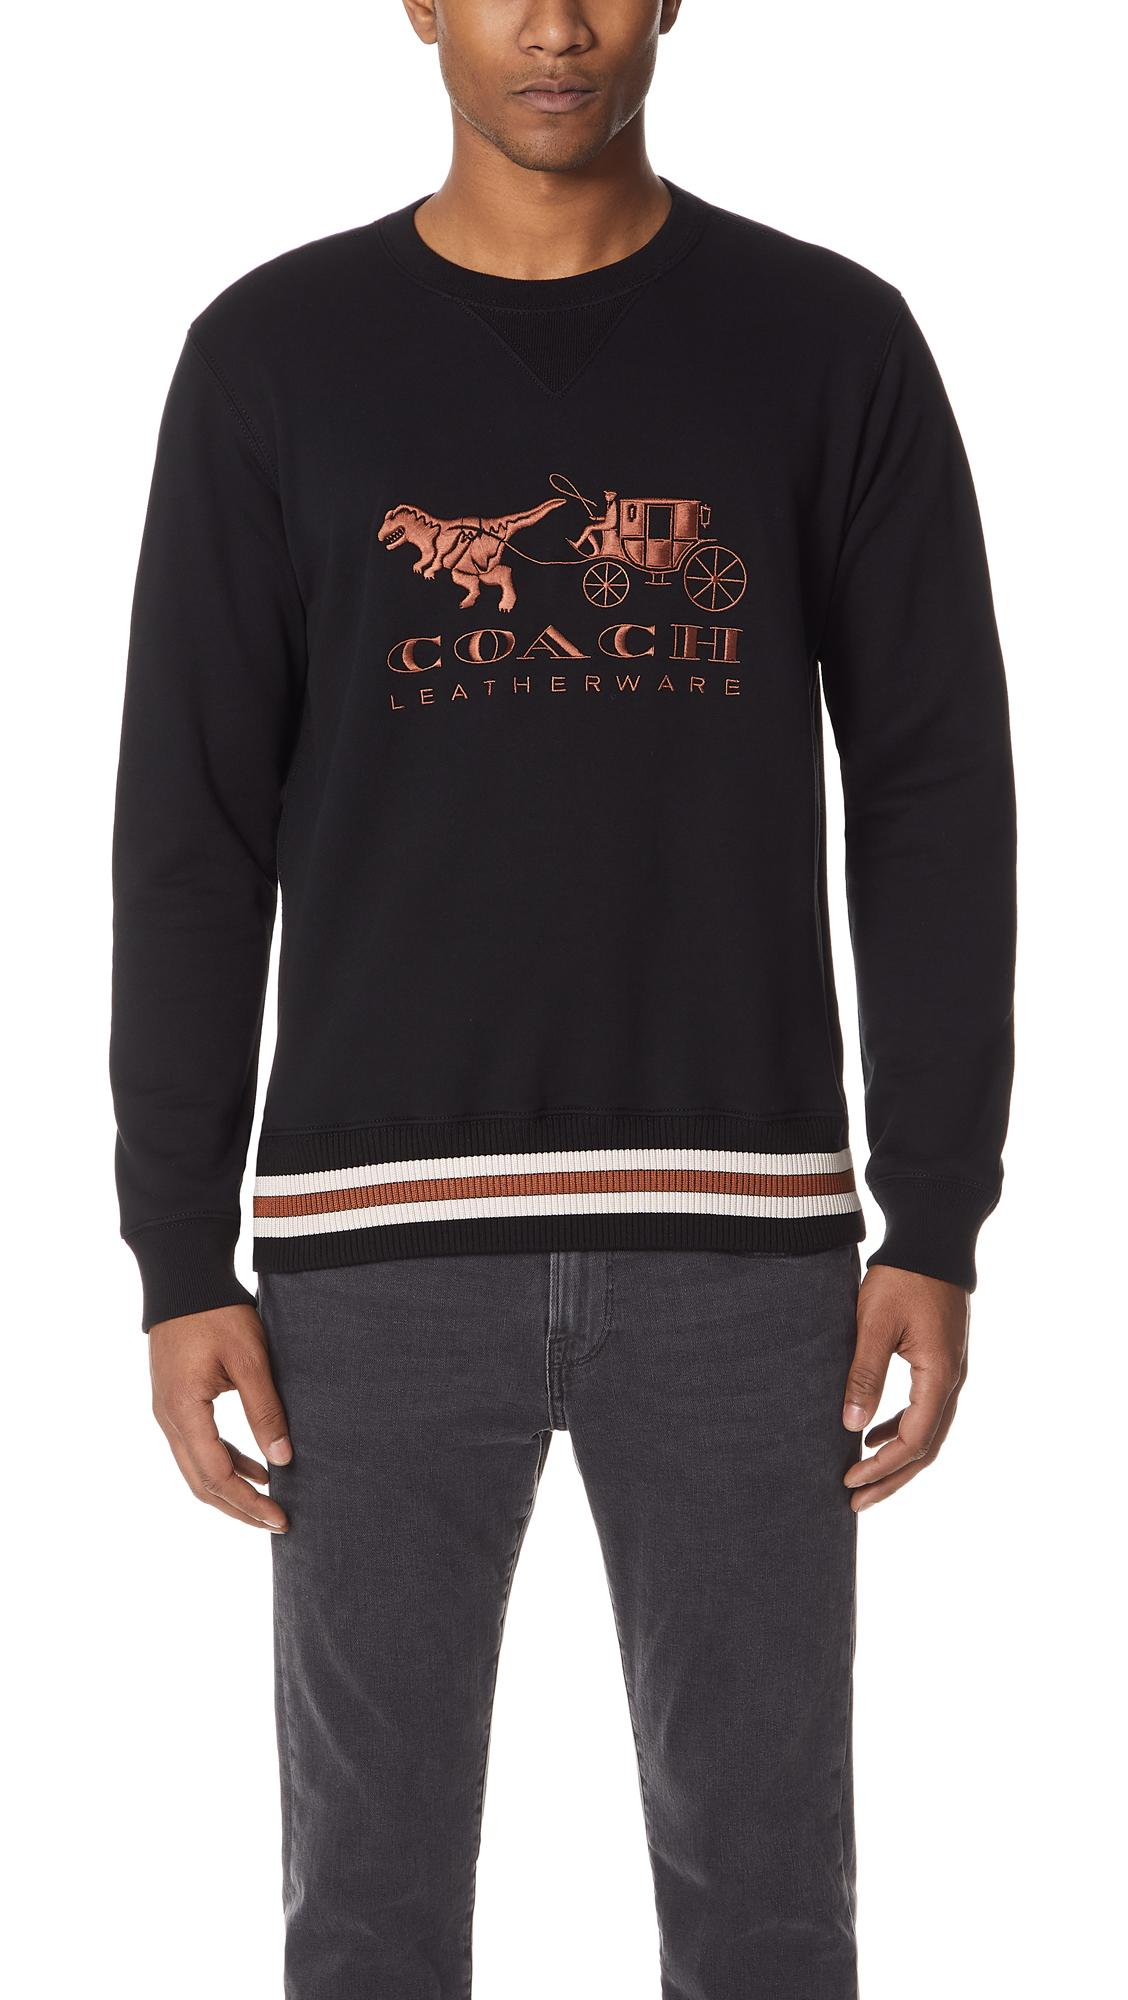 a88dcd9aee 1941 Rexy And Carriage Sweatshirt in Black